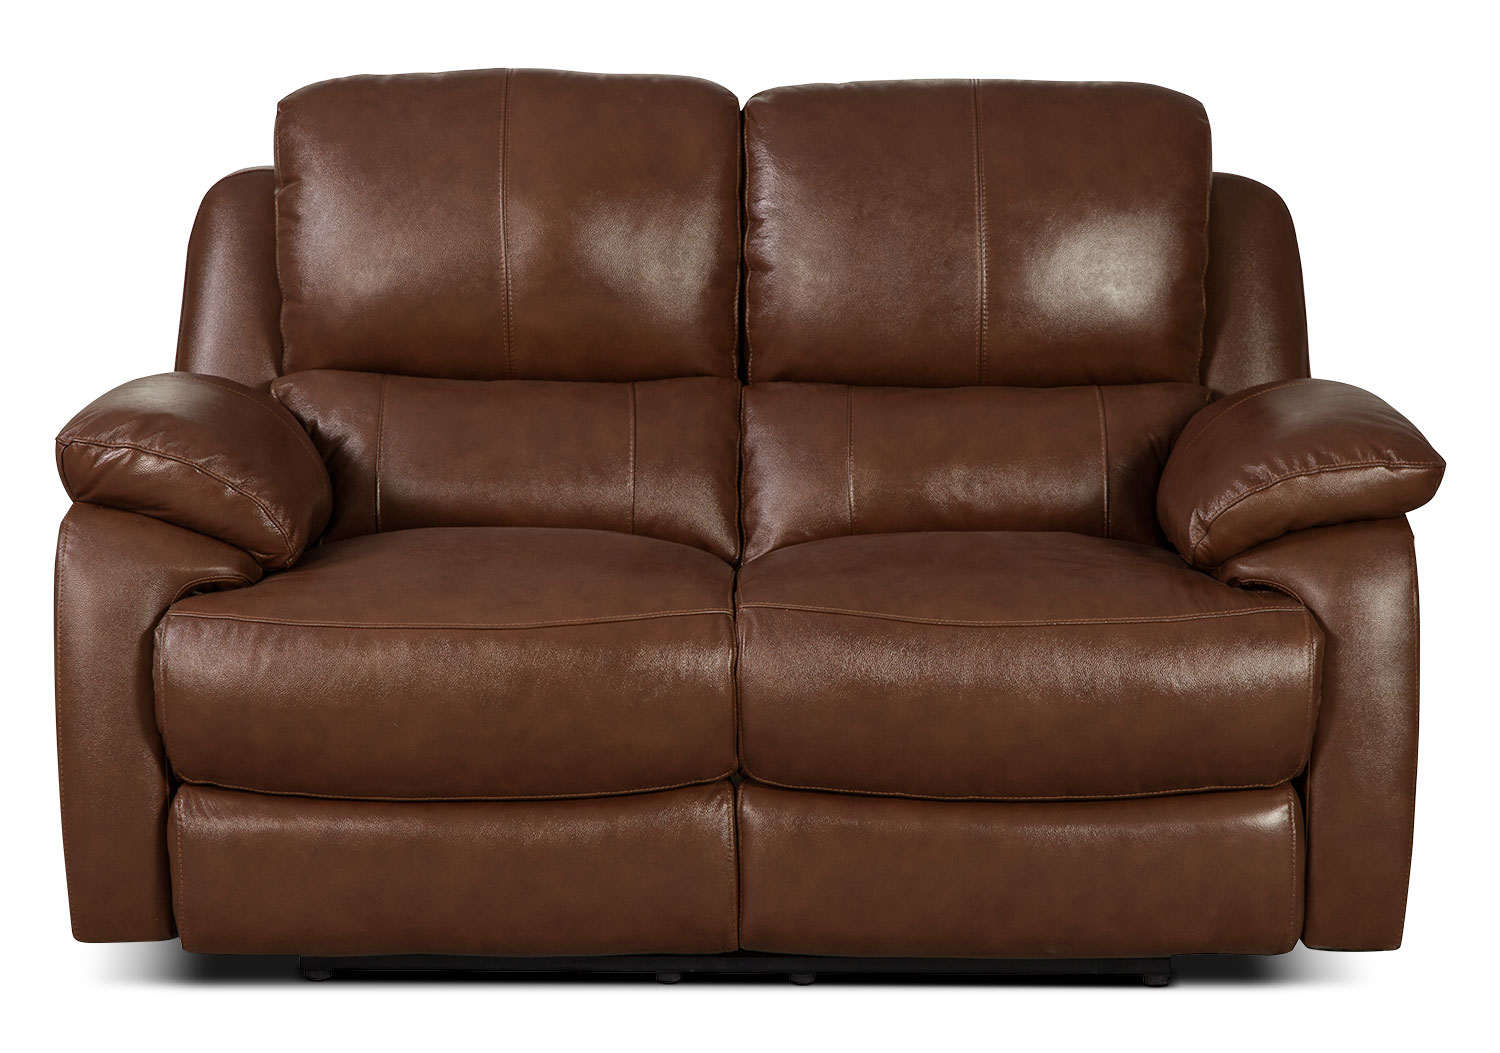 Living Room Furniture - Cairo Genuine Leather Reclining Loveseat – Brown